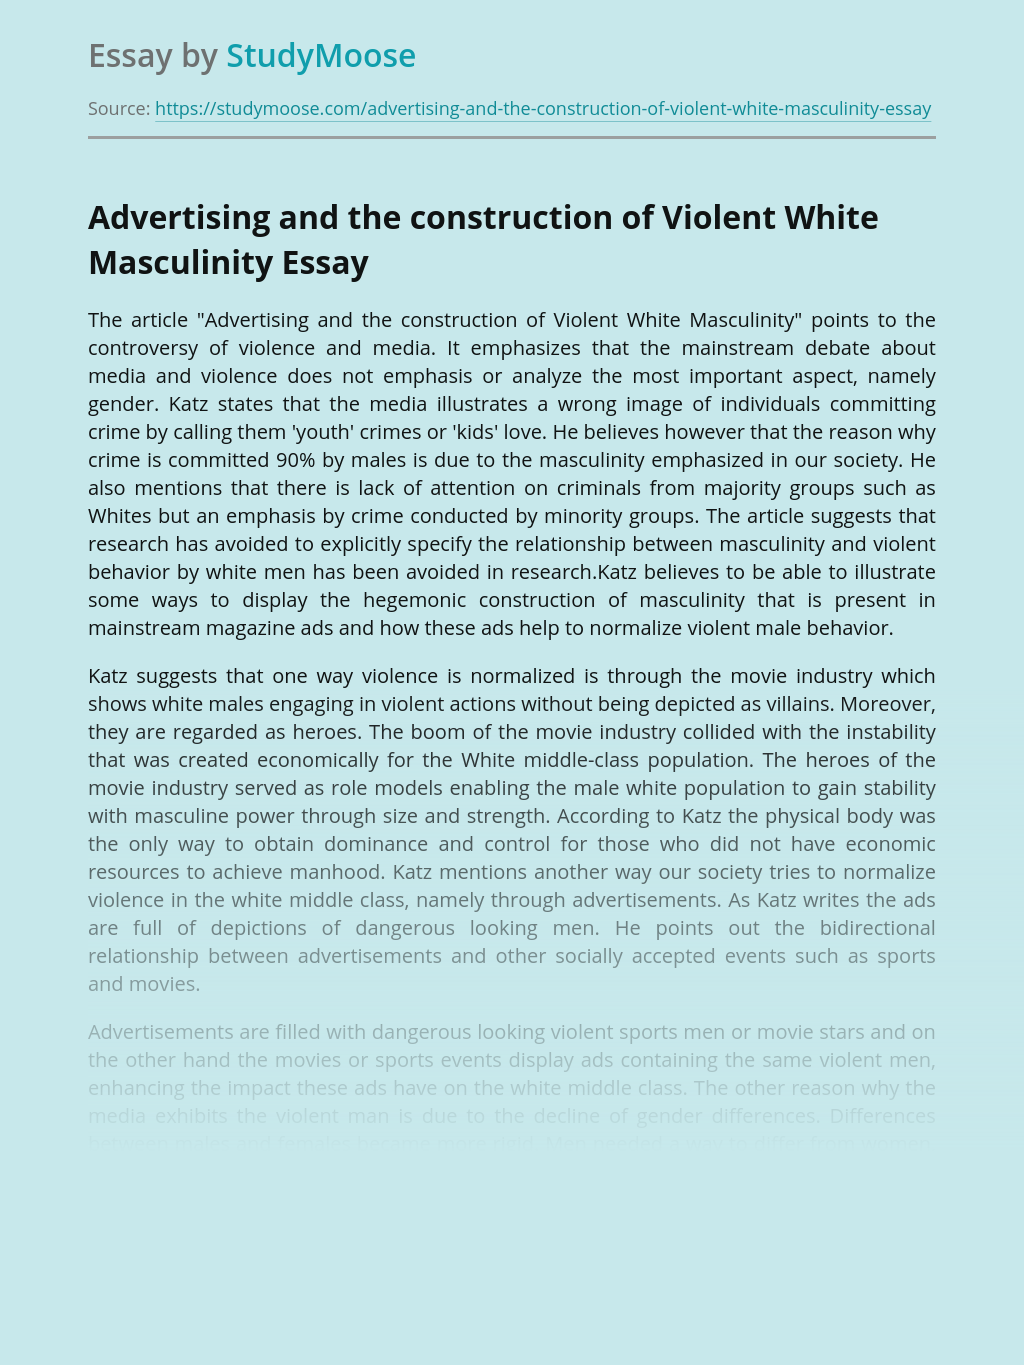 Advertising and the construction of Violent White Masculinity